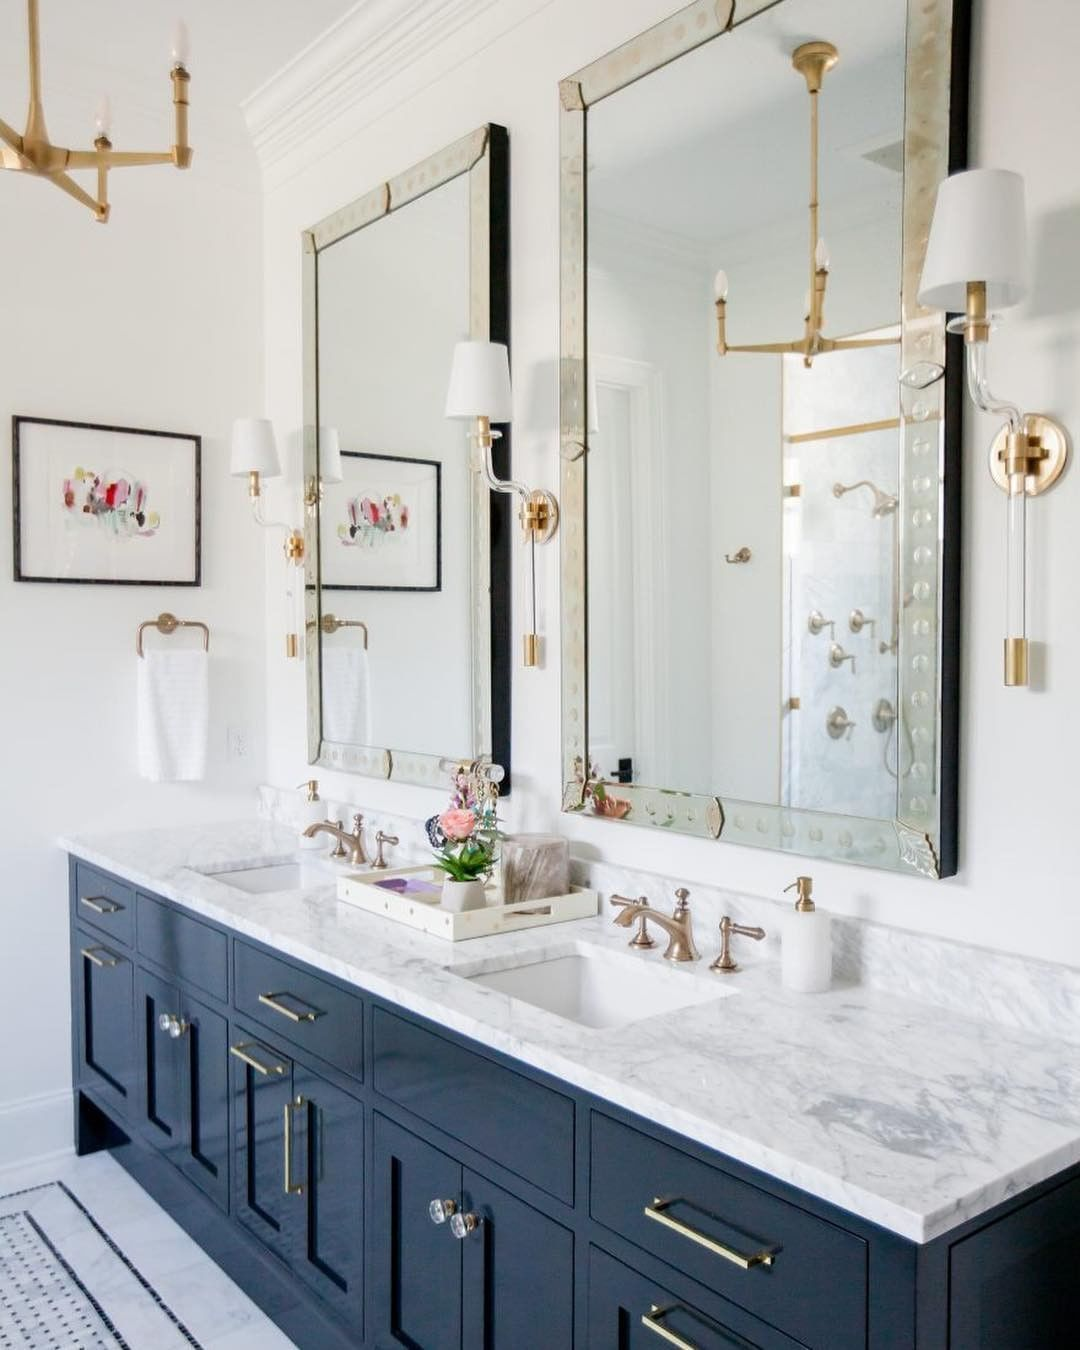 Here are the 12 Design Tips to Make a Small Bathroom Better from 1. Install a c images